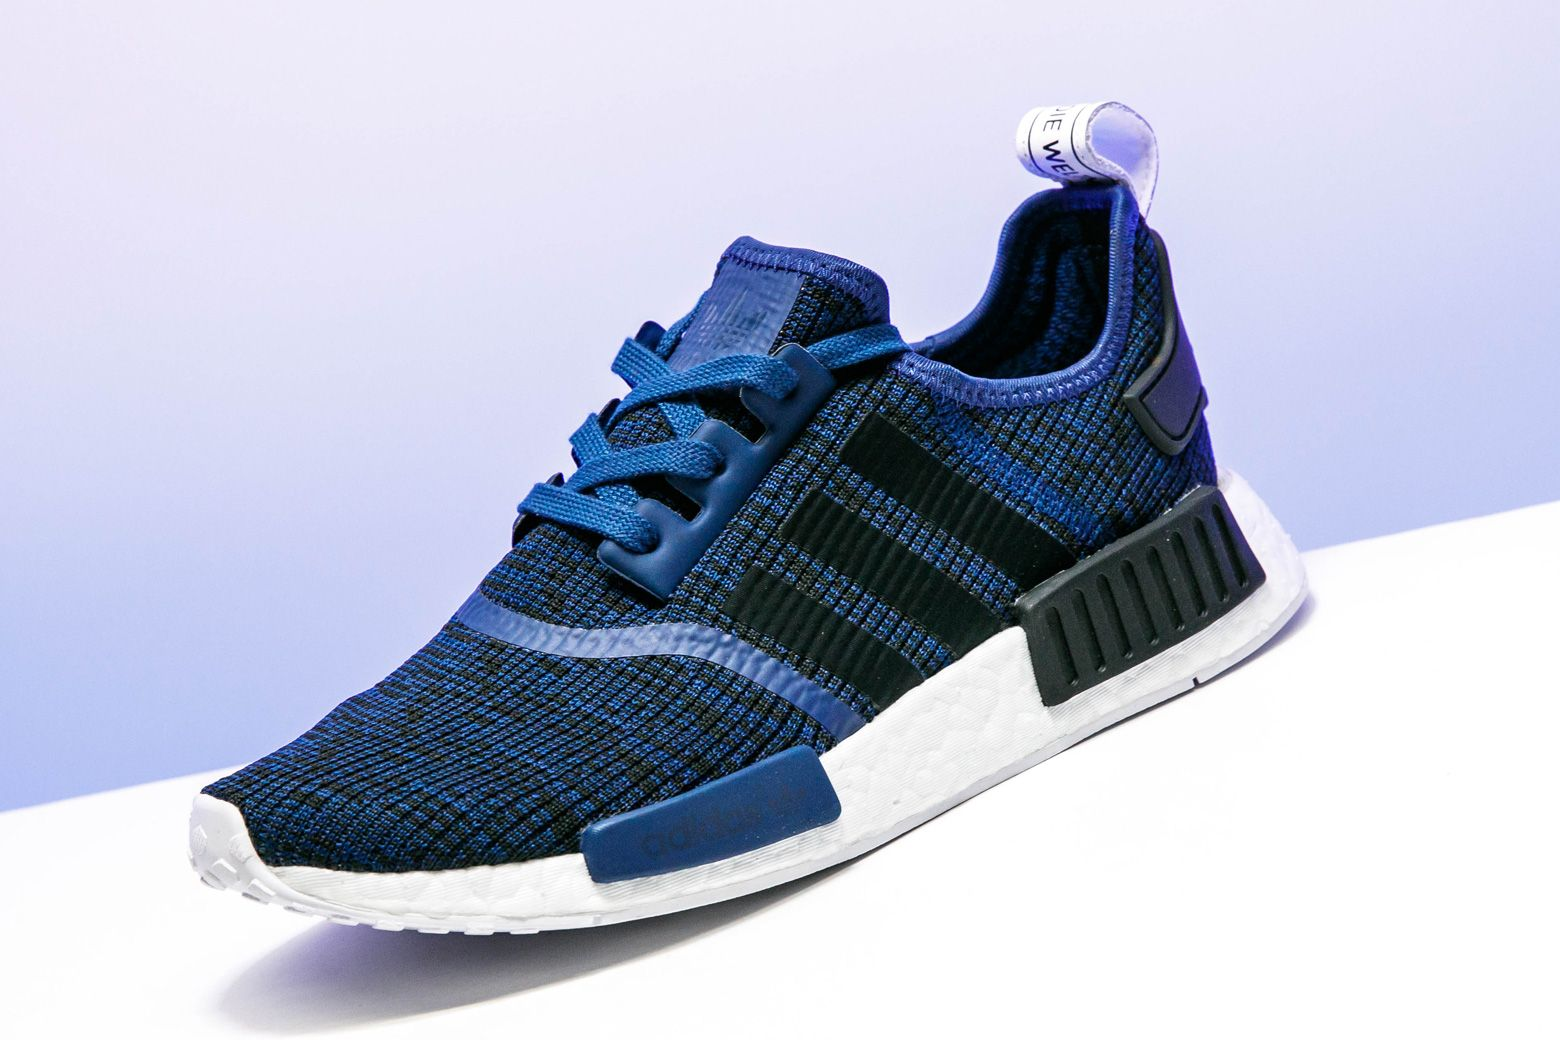 """e11b570cbff6a adidas keeps the heat coming with the stunning NMD R1 in """"Mystic Blue"""".   adidas"""